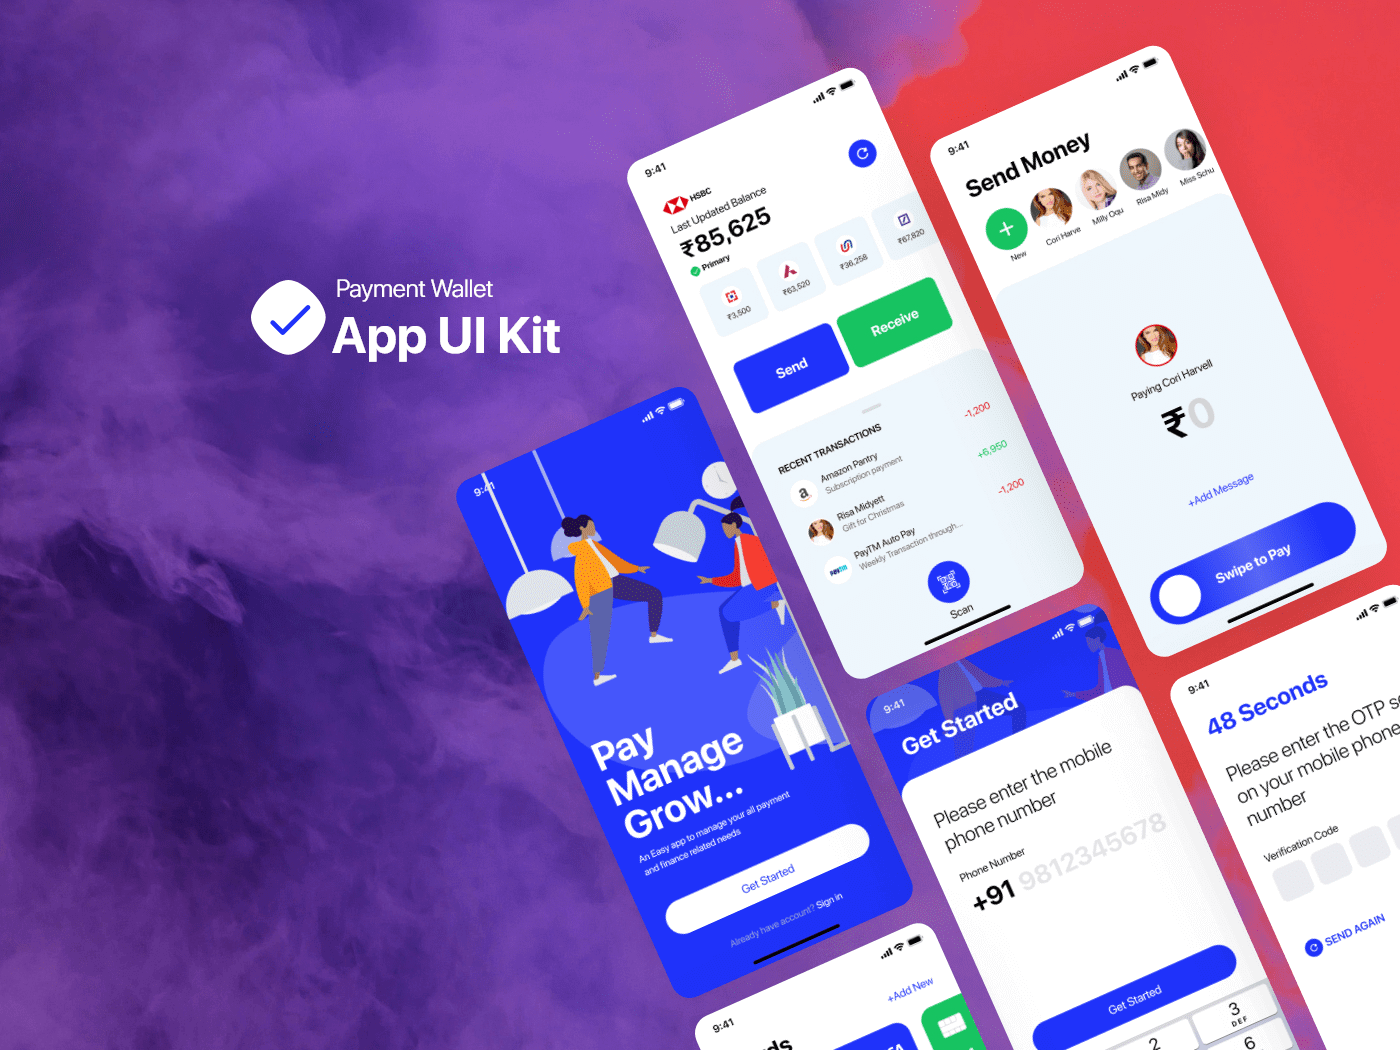 Payment Wallet Mobile App UI Kit cover image